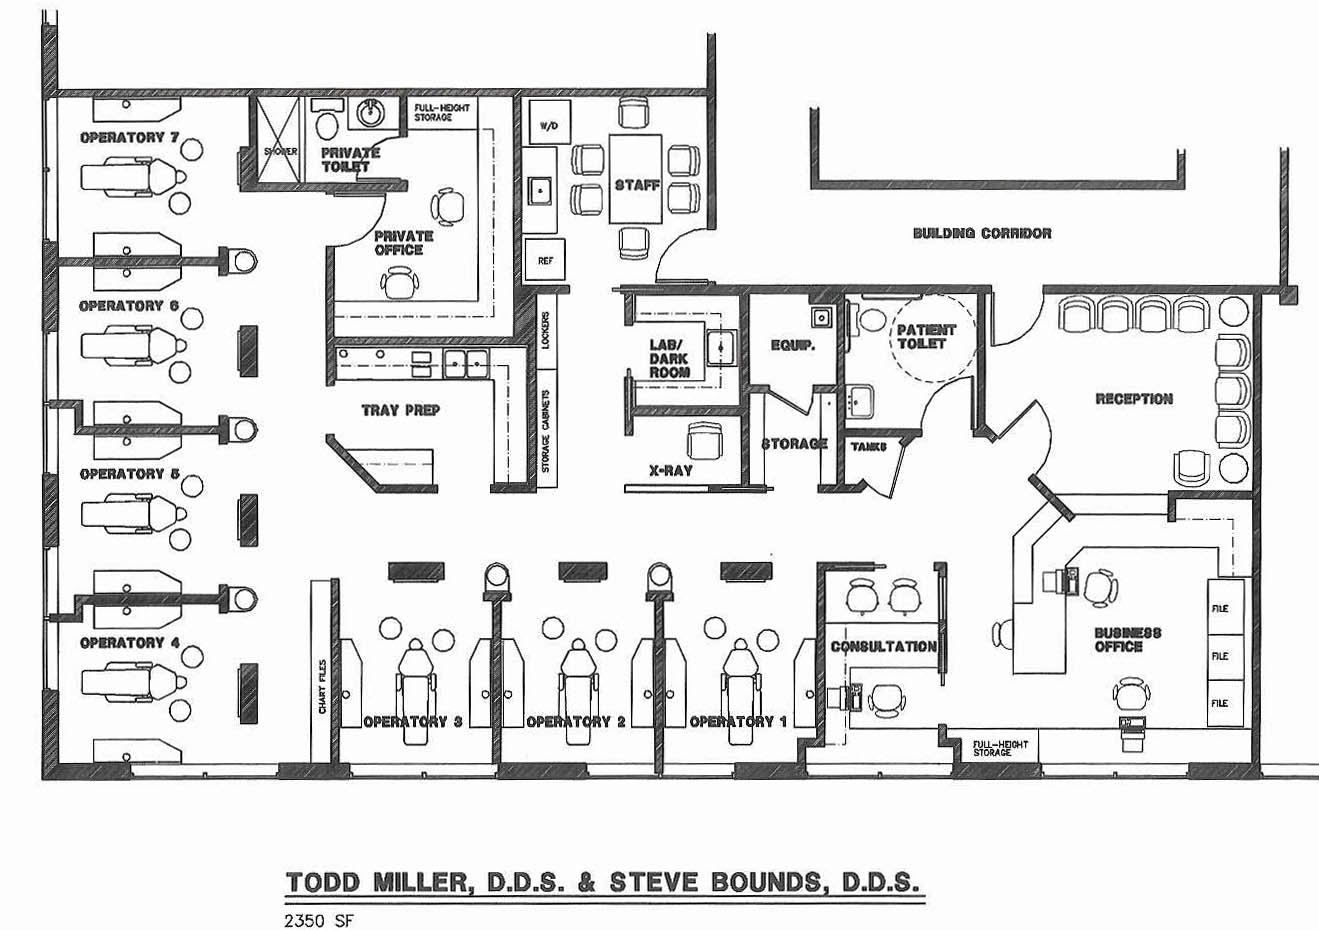 T michael hadley architect sedona arizona for X ray room floor plan